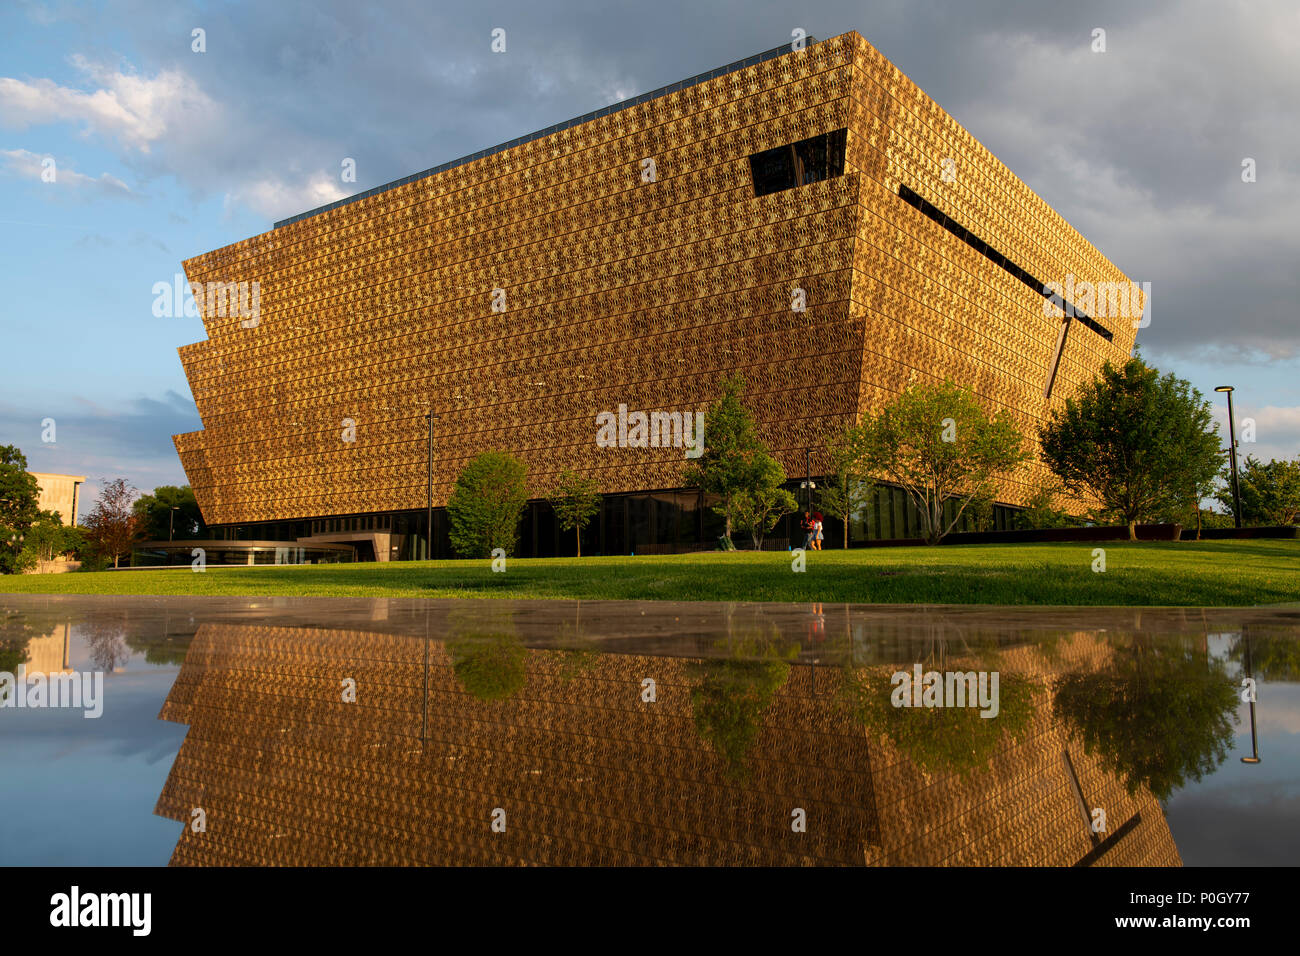 usa-washington-dc-smithsonian-museum-of-african-american-history-and-culture-on-the-national-mall-P0GY77.jpg